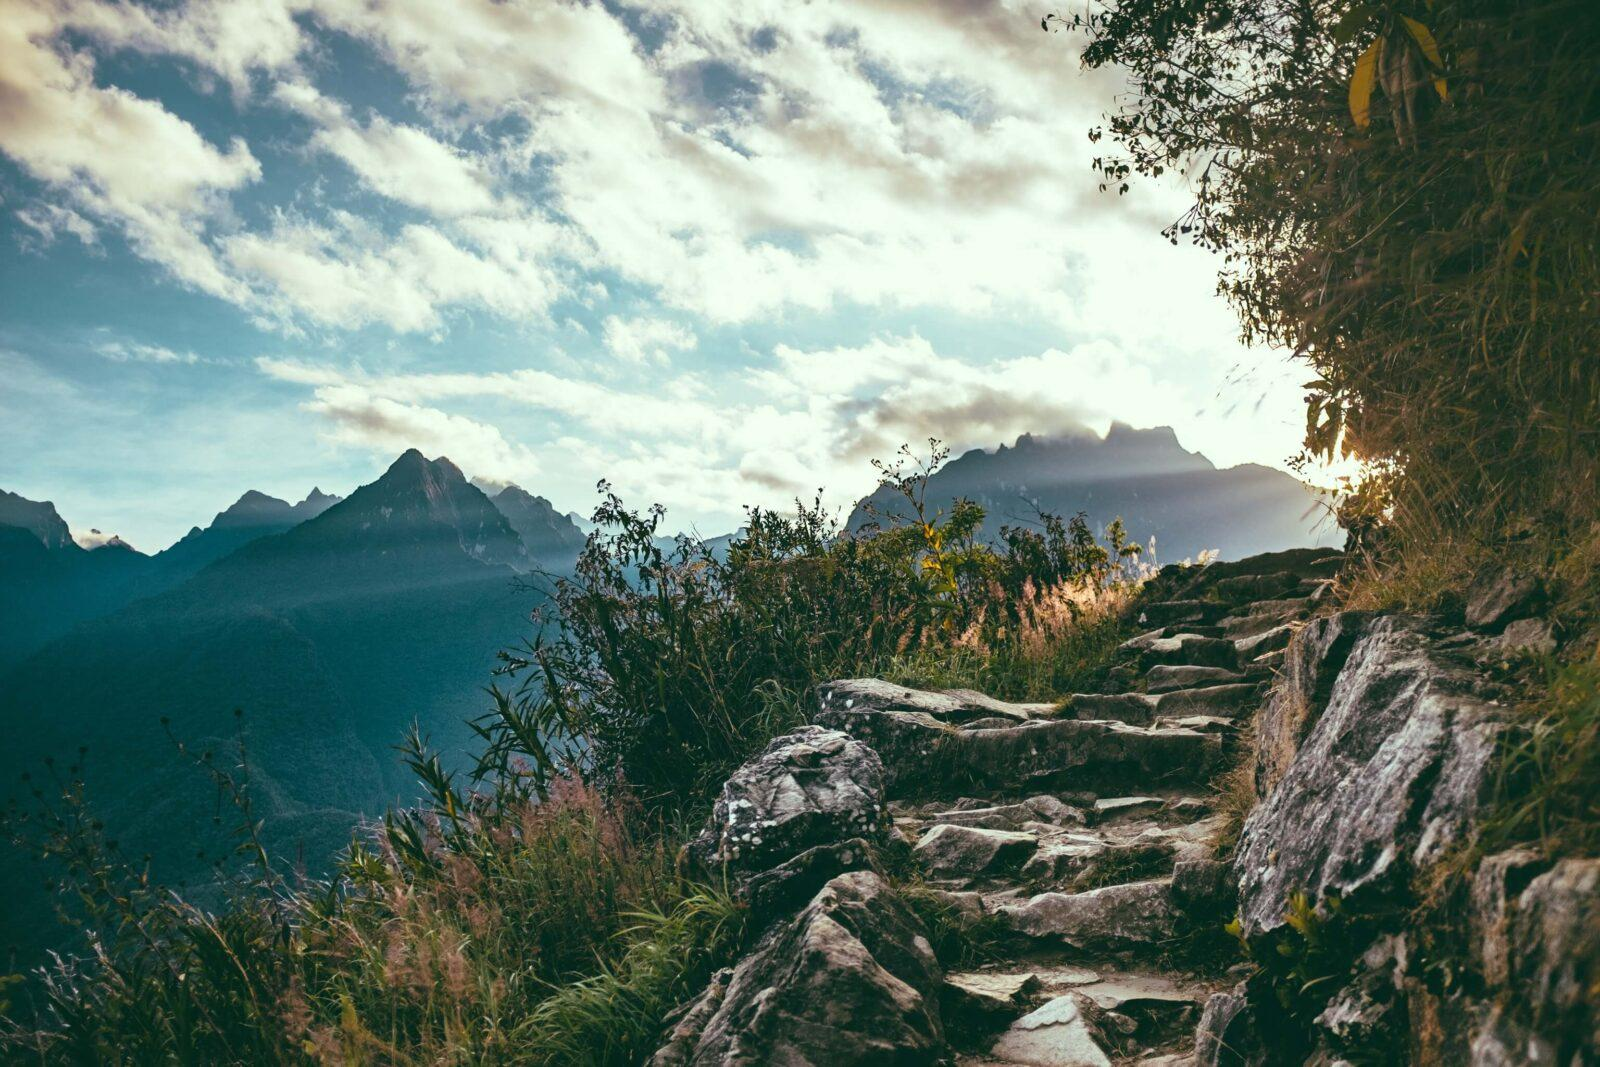 Hiking up stairs in Peru mountains.